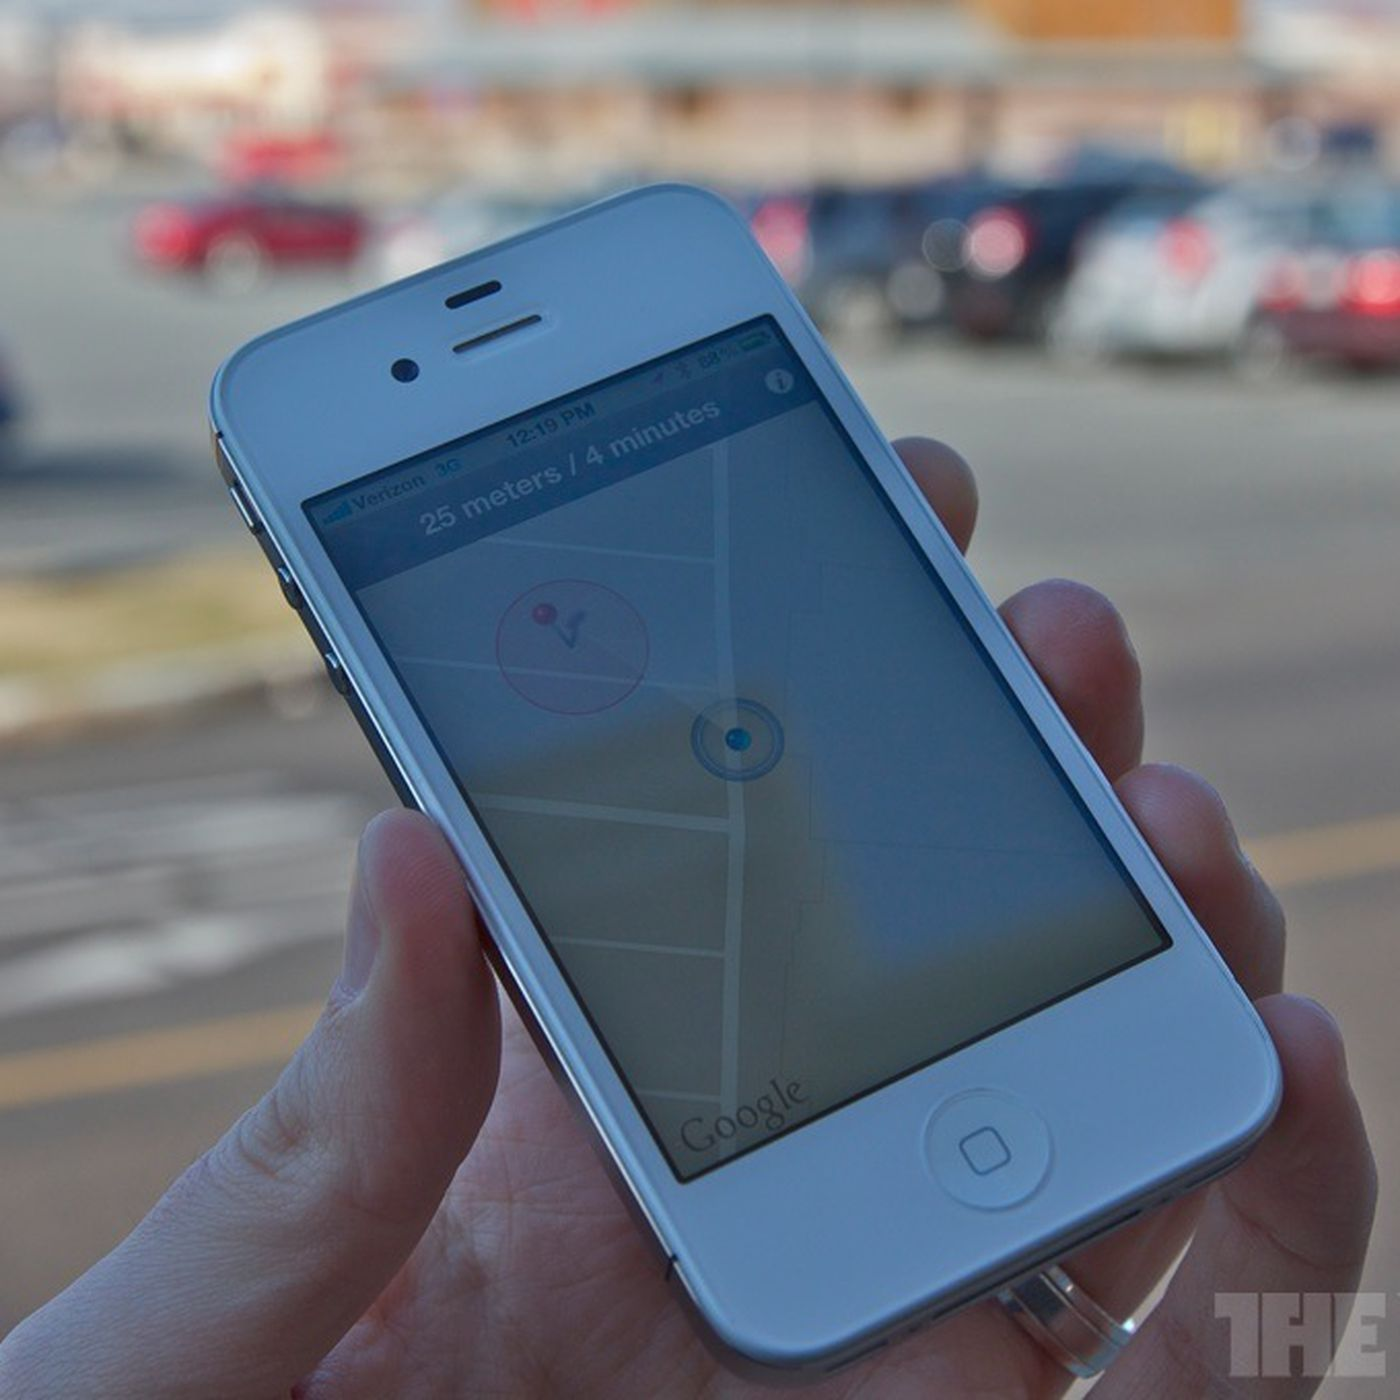 Find My Car Smarter App Takes Advantage Of Iphone 4s Bluetooth 4 0 Capabilities The Verge